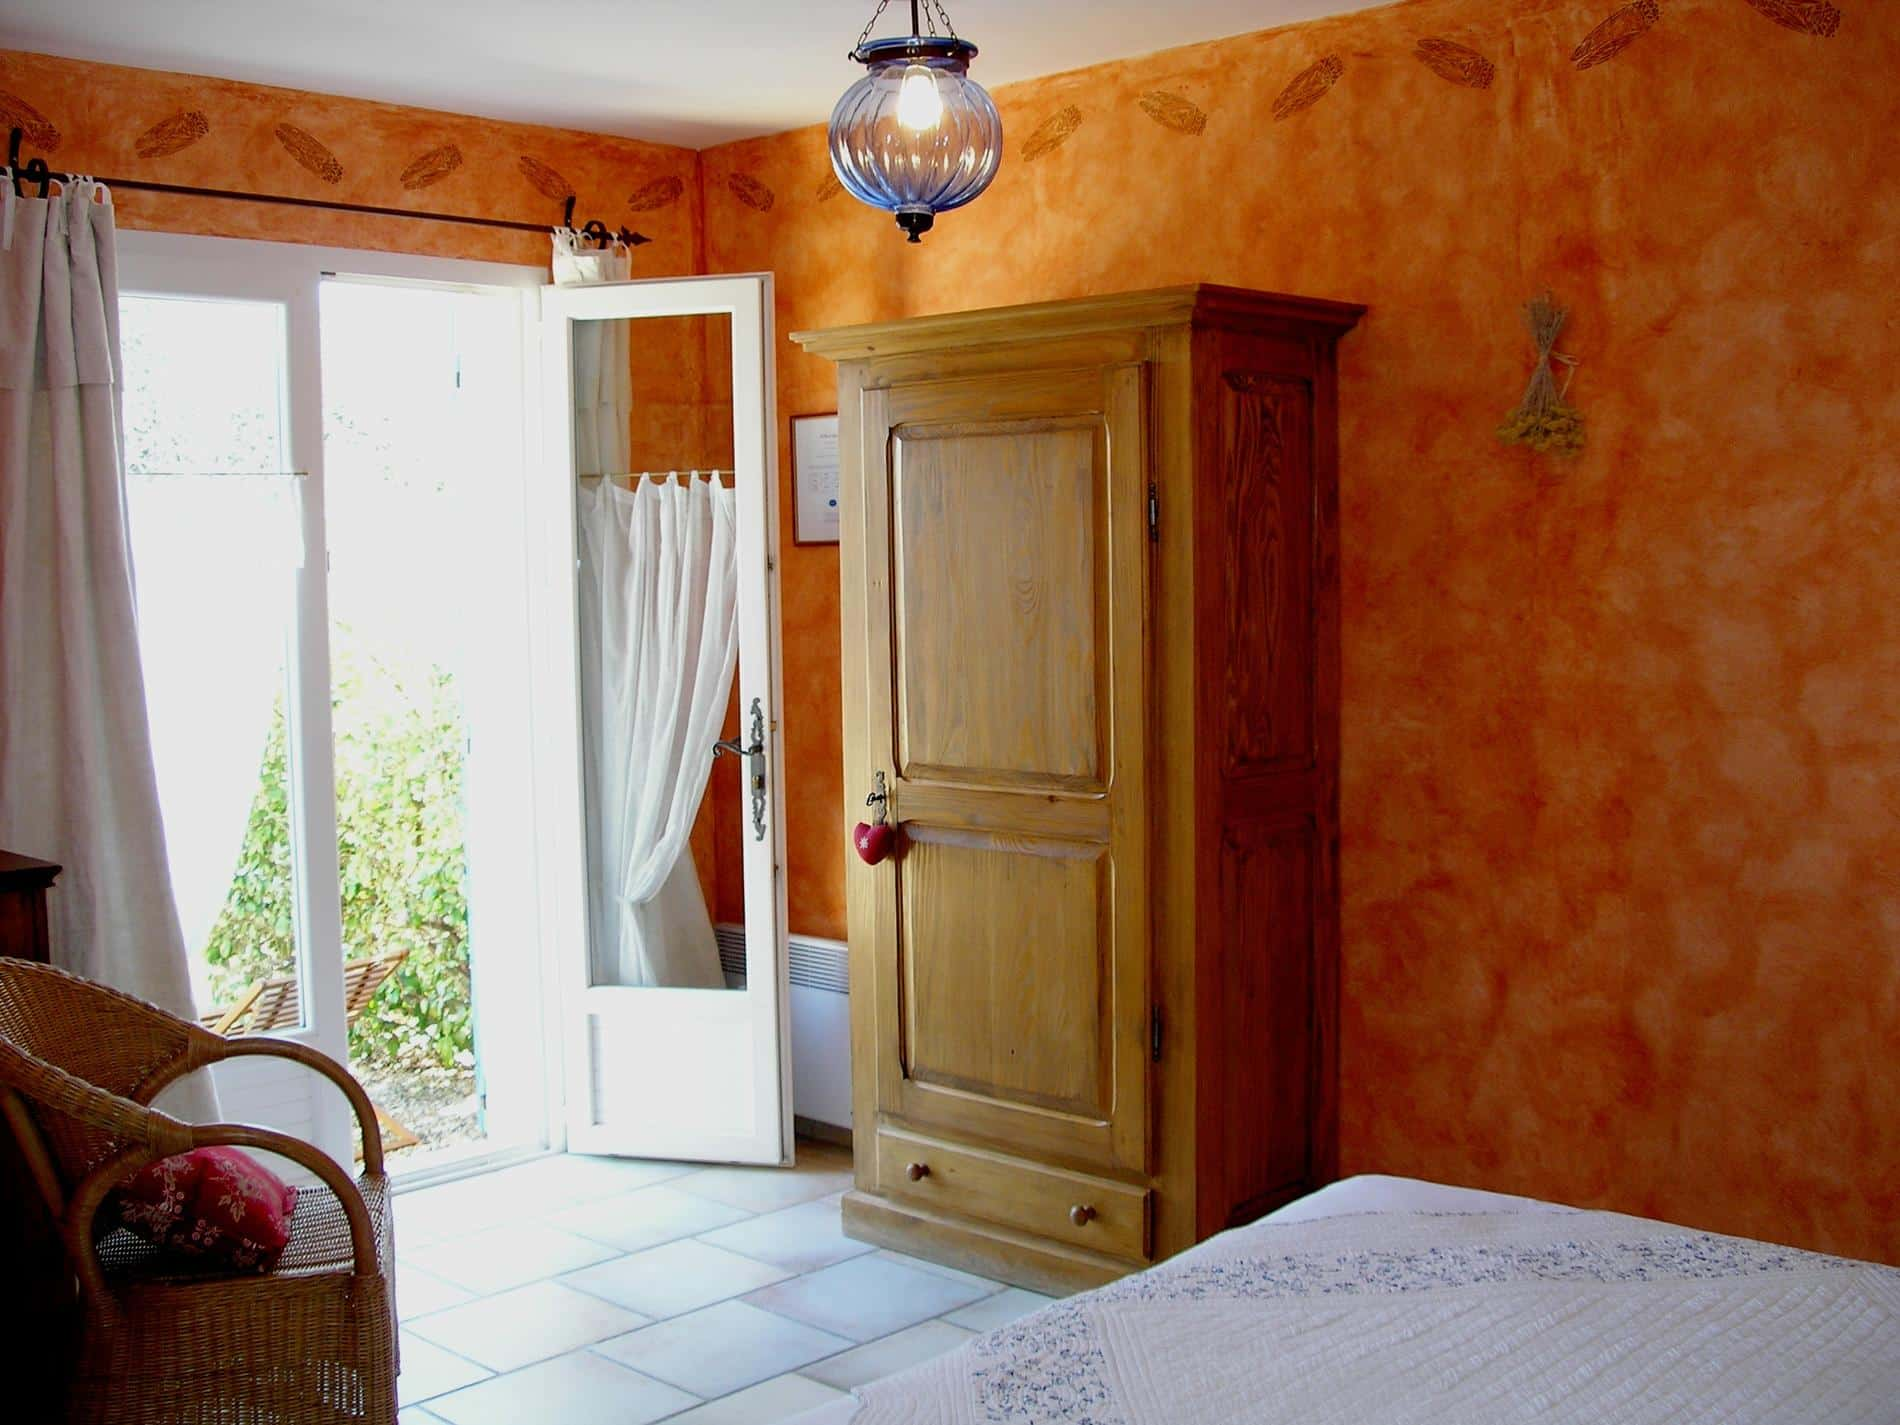 Chambre Hote Luberon Cigale Cheap Bed And Breakfast Luberon Clos Des Lavandes